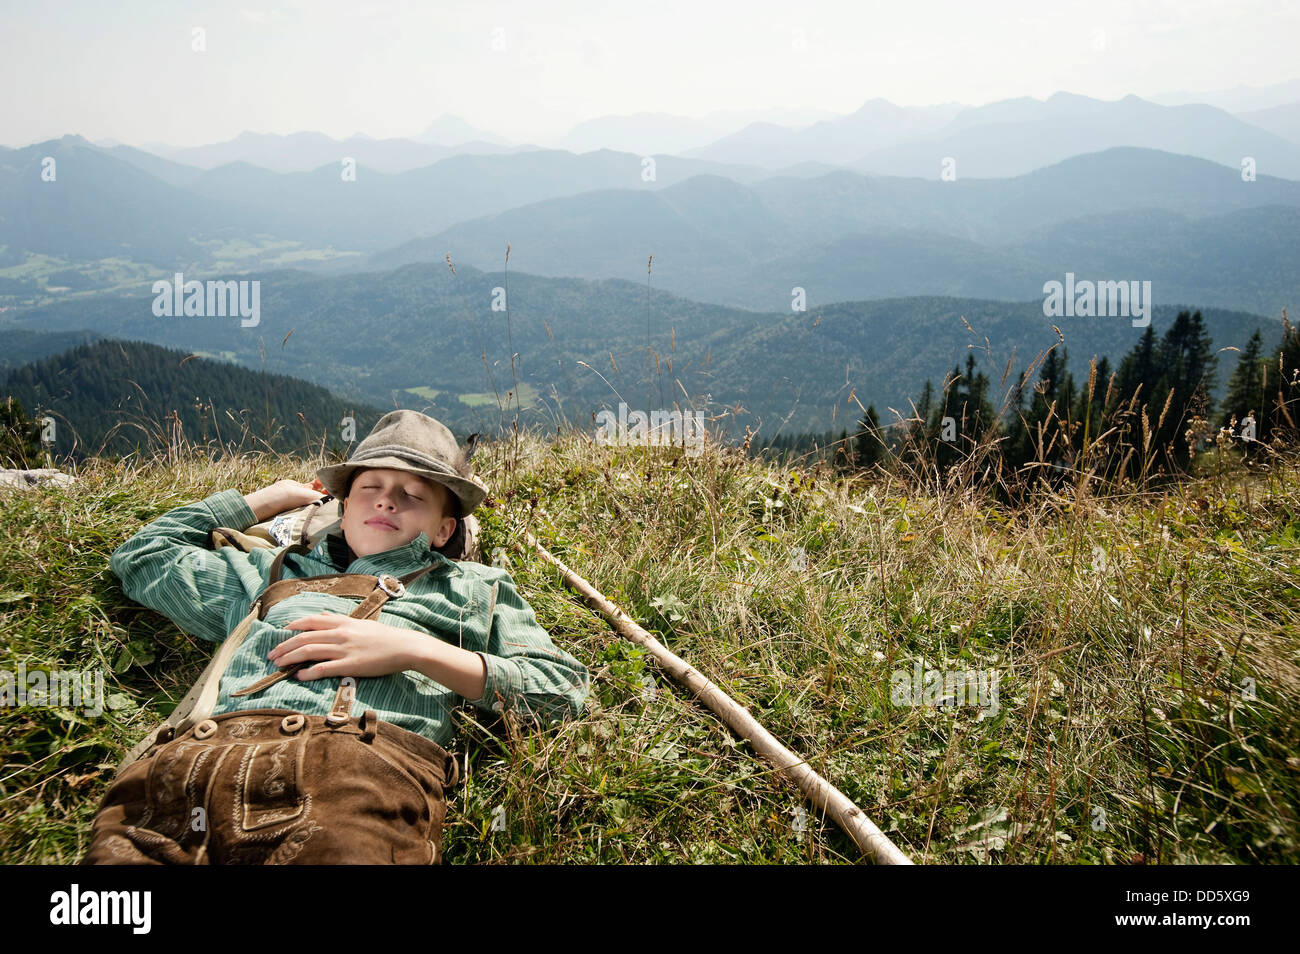 Germany, Bavaria, Boy in traditional clothing sleeps in the mountains - Stock Image